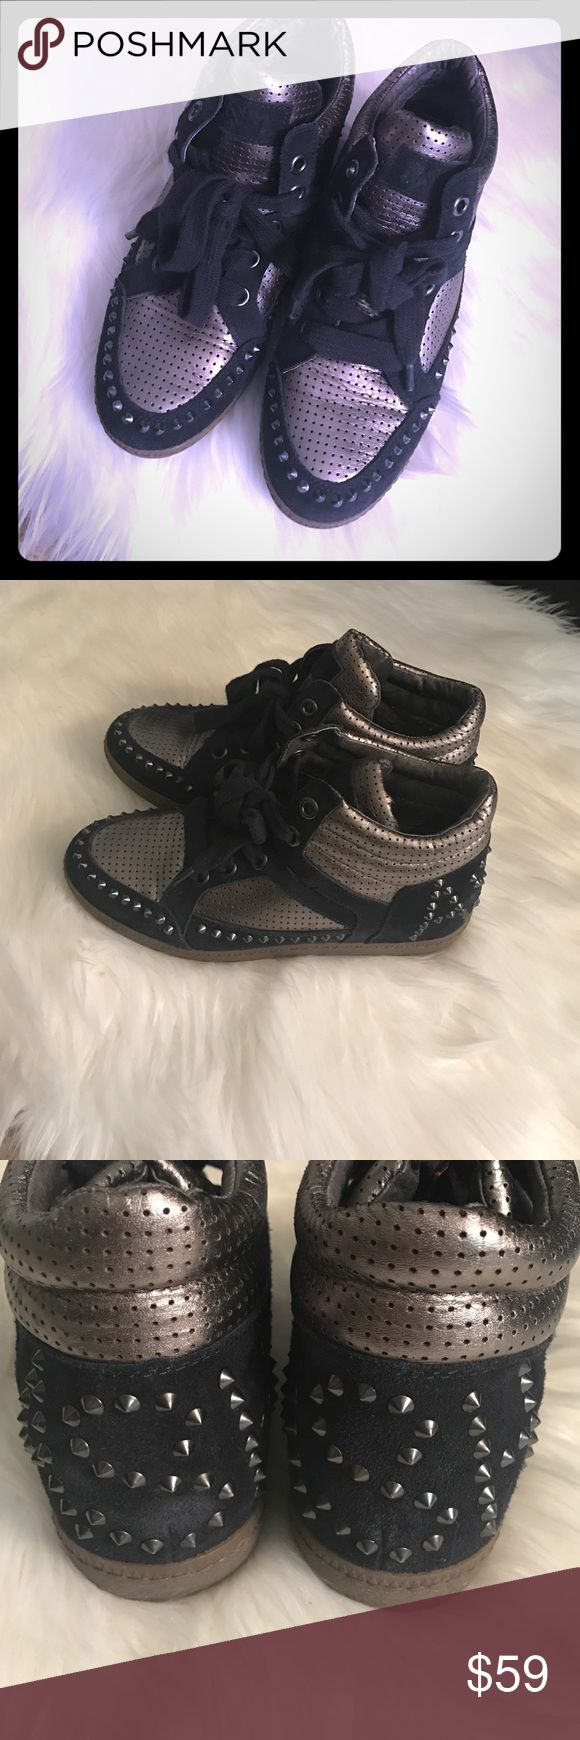 Like new Ash studded sneaker Authentic, extremely gently used, Ash studded sneakers. Black and graphic silver detailing. Super comfortable and fashionable. Ash Shoes Sneakers